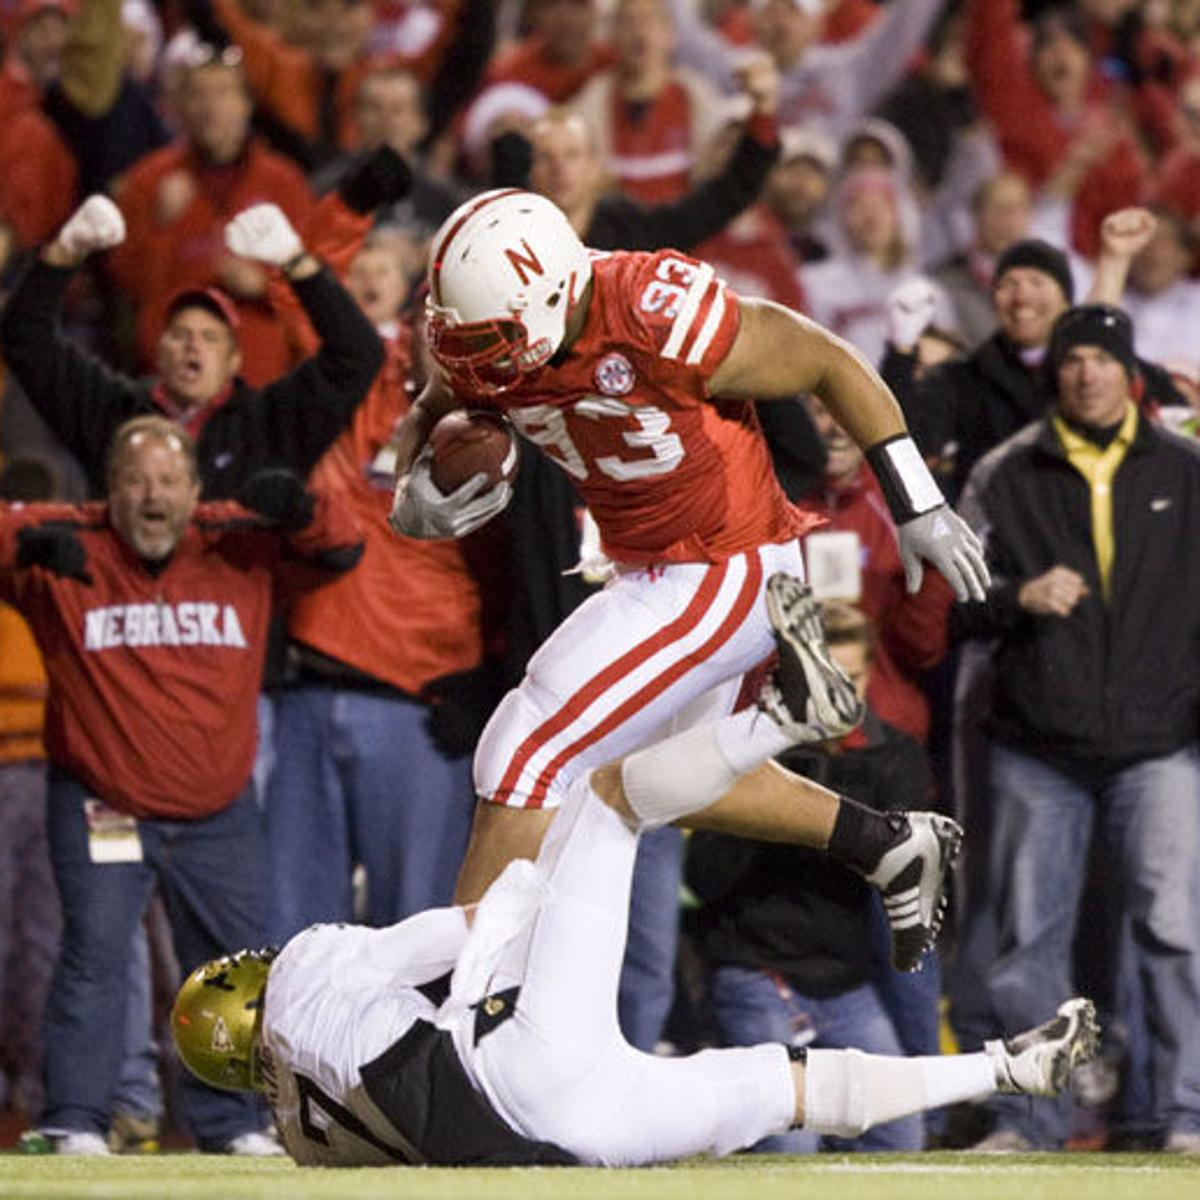 new arrival d37b2 5b1e7 Nebraska-Colorado rivalry goes way back | Huskers HQ ...